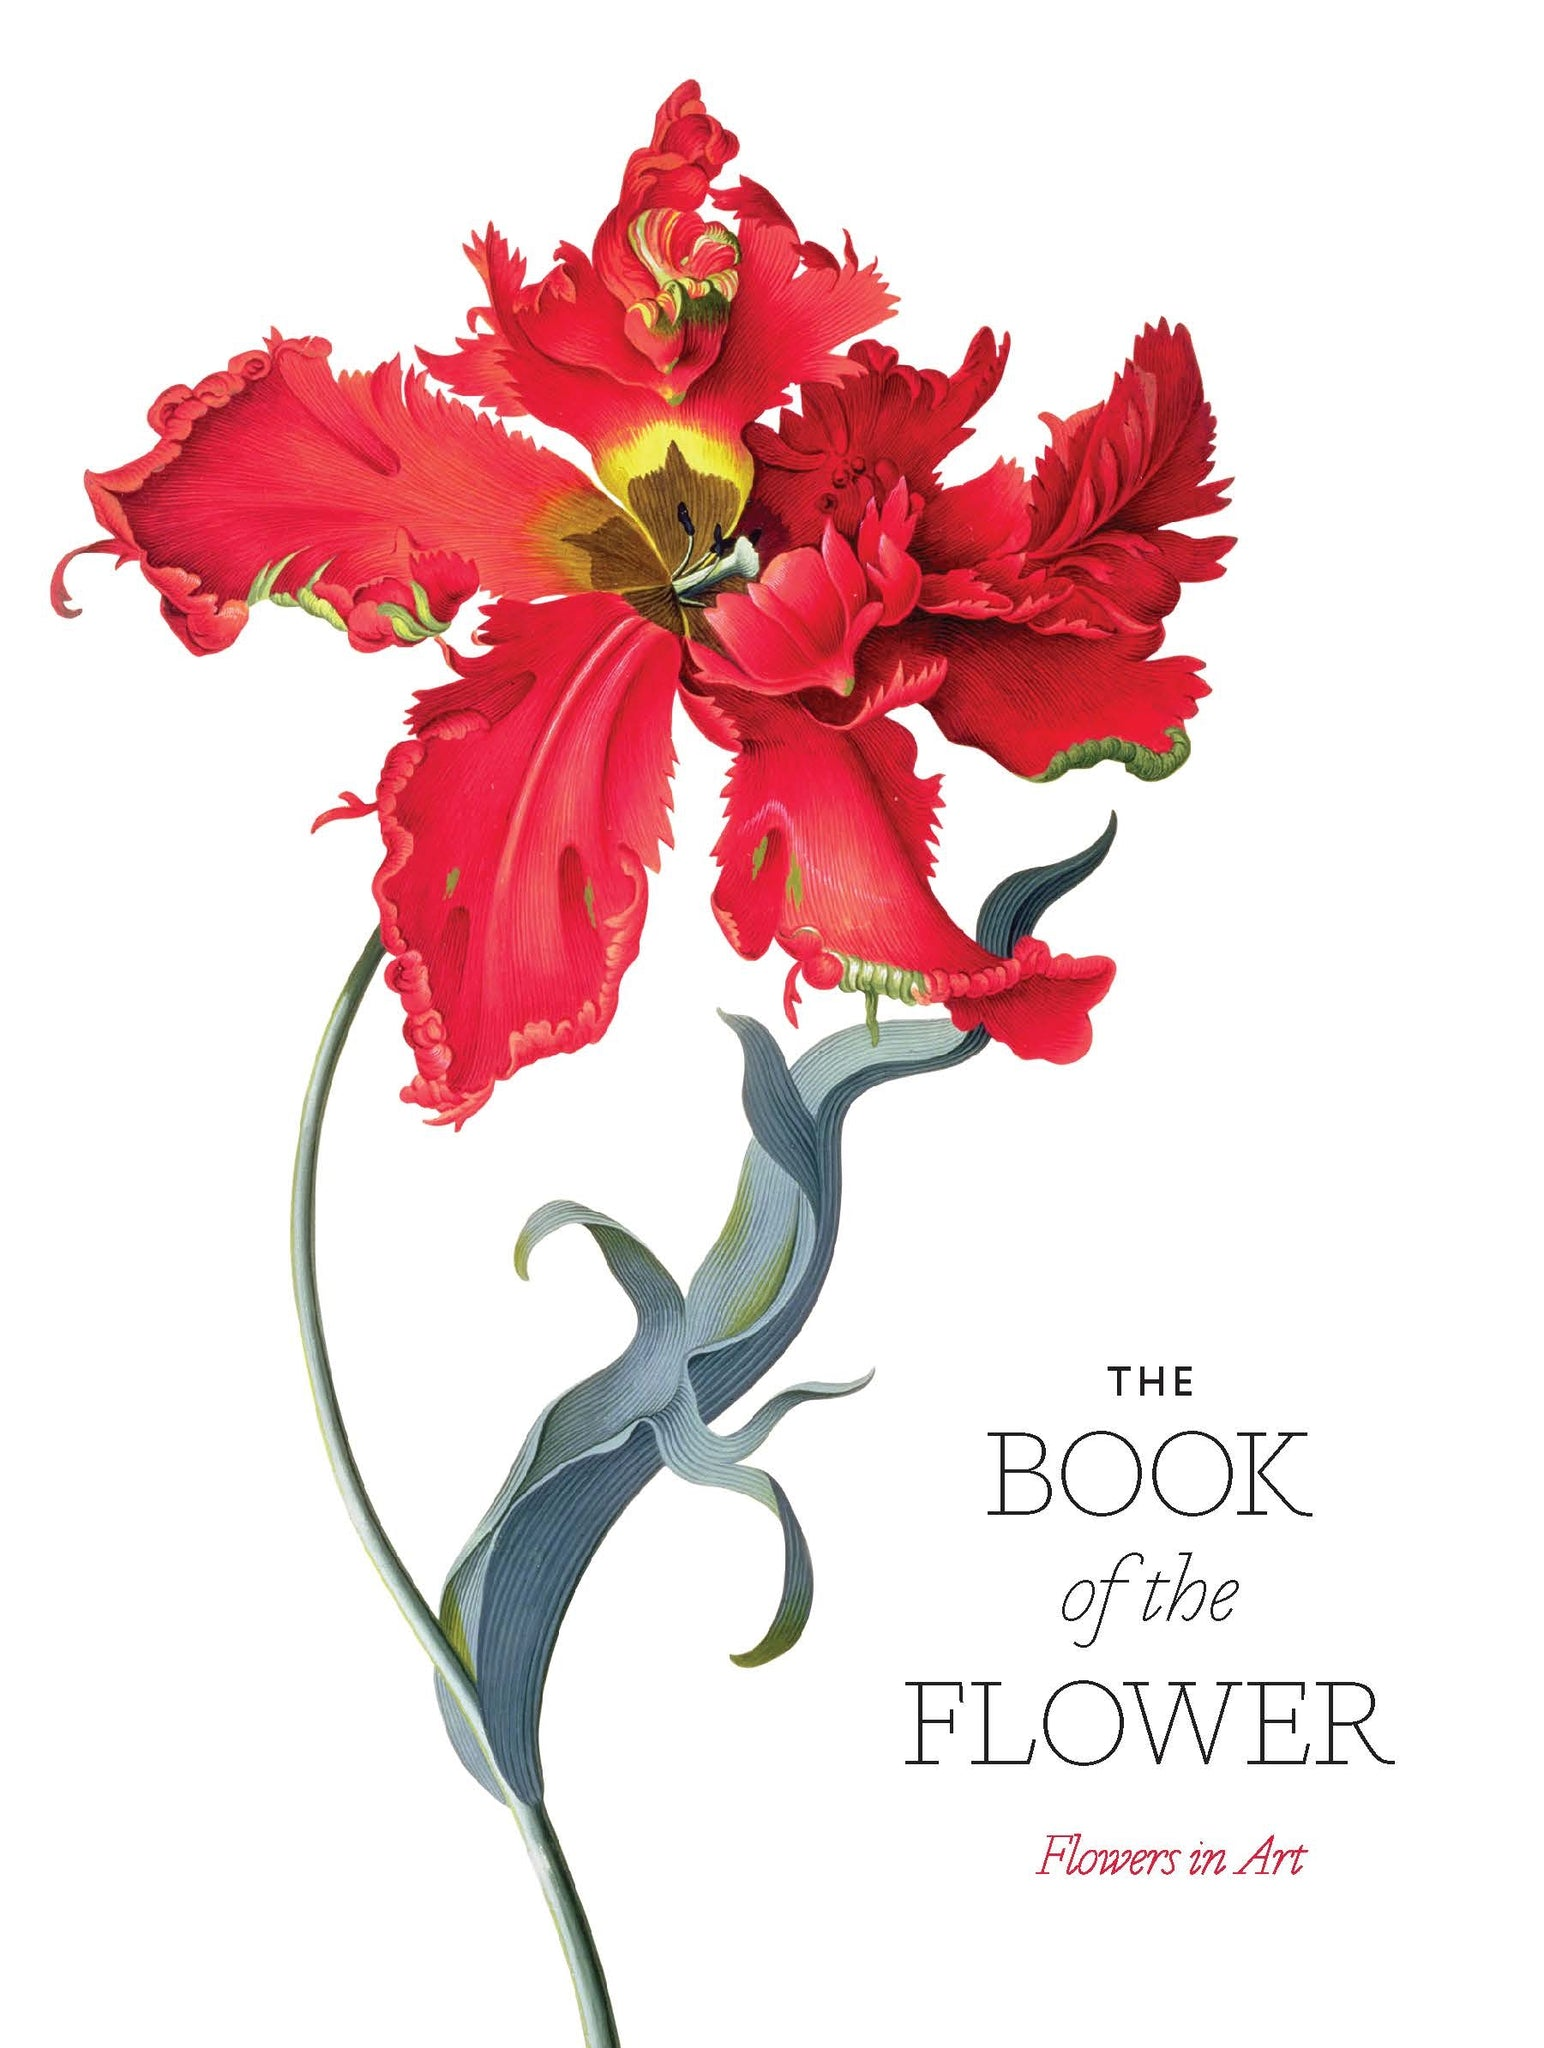 Book of the Flower: Flowers in Art